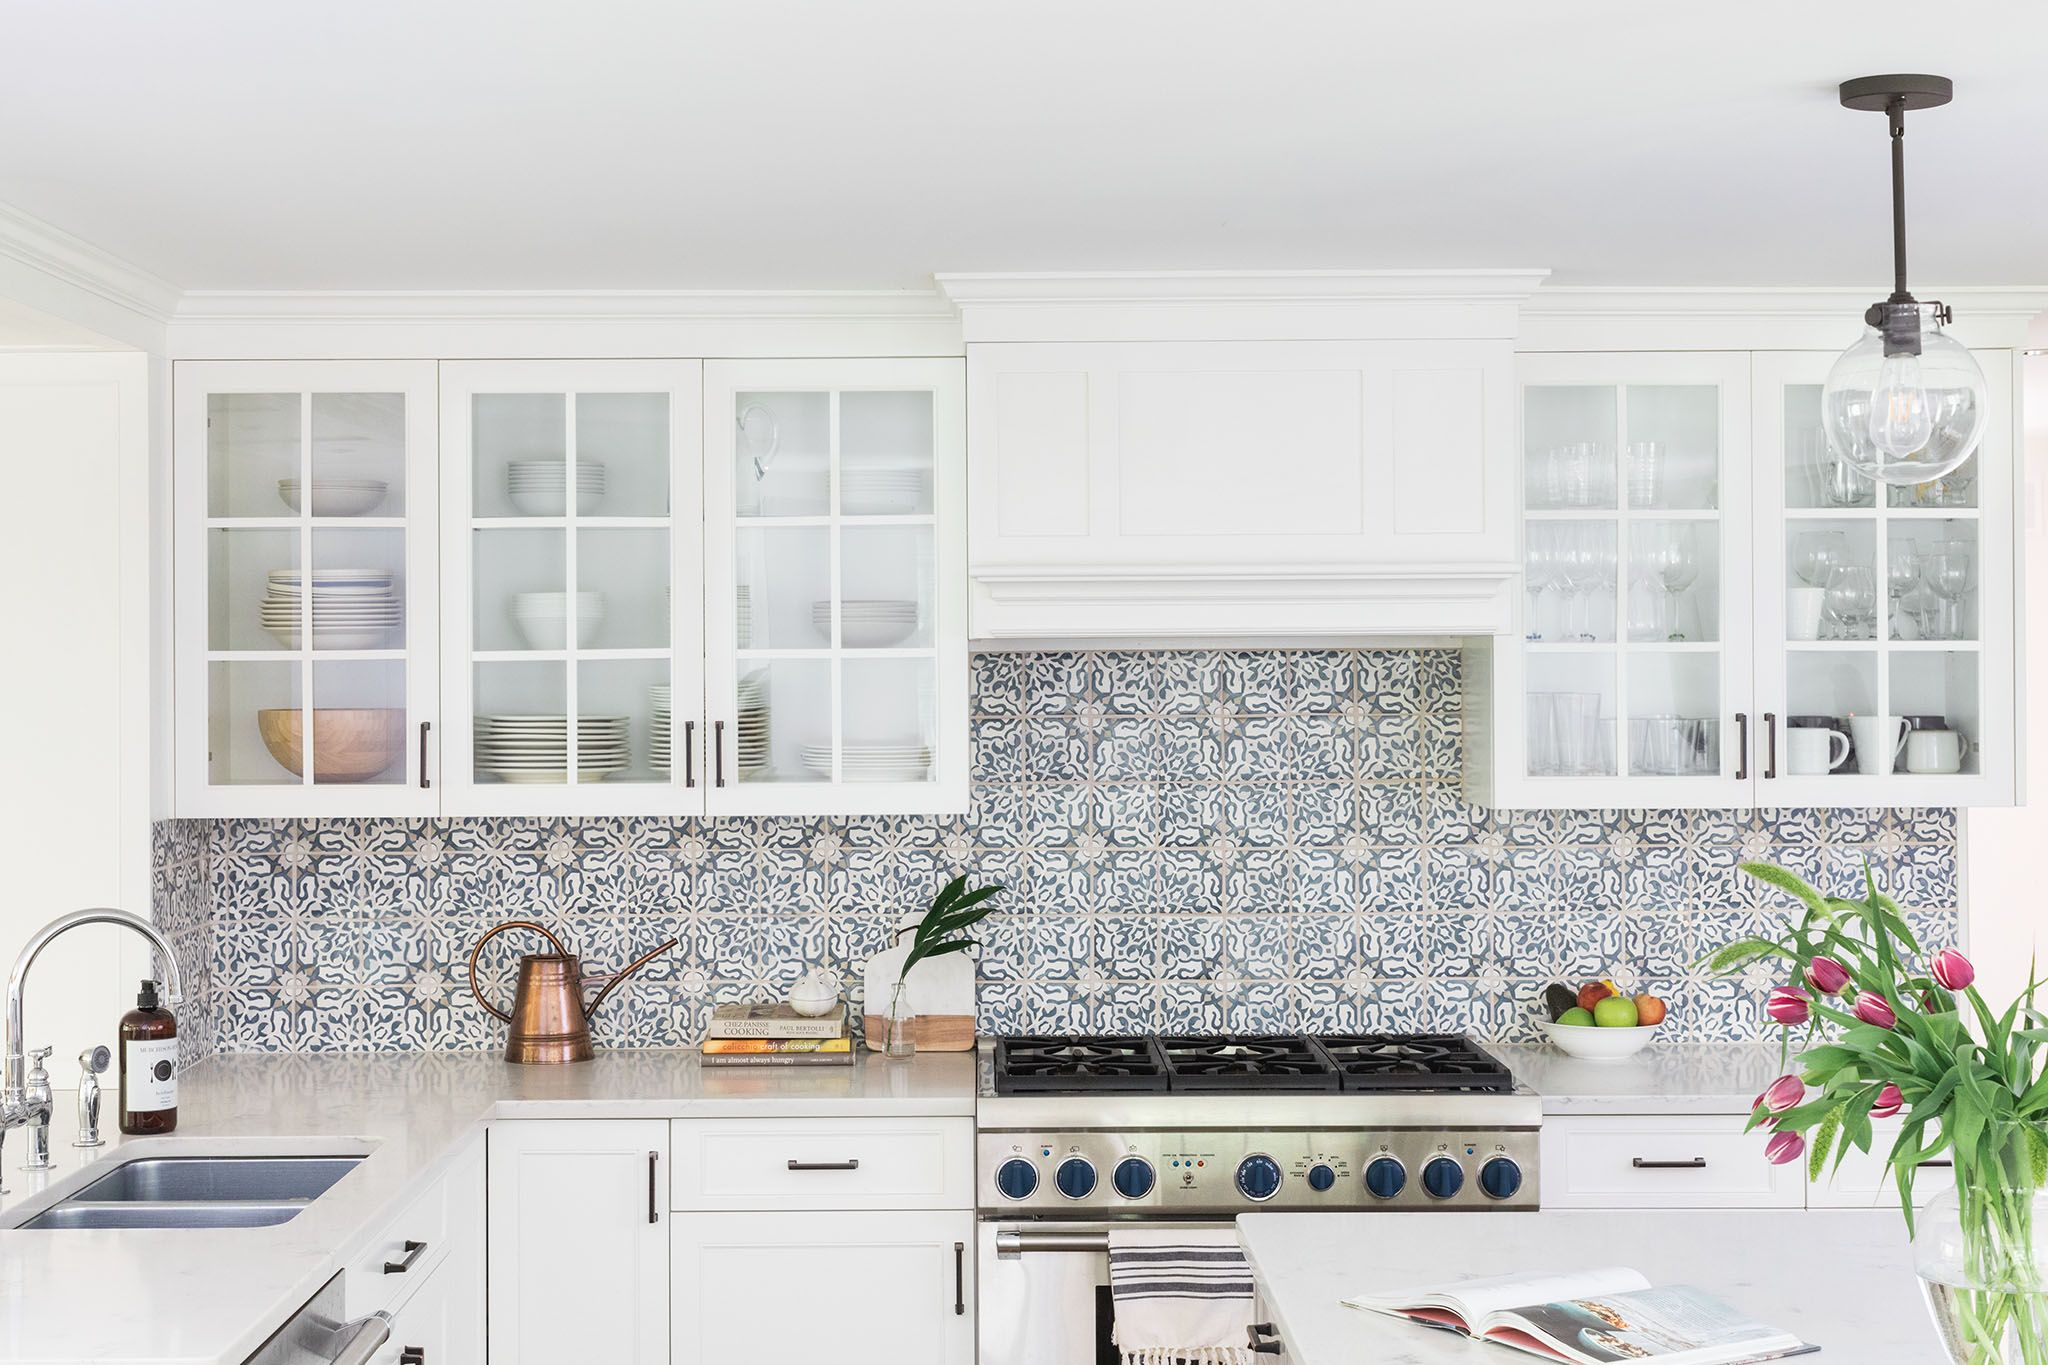 These moroccan style backsplash tiles create a statement making kitchen we love it